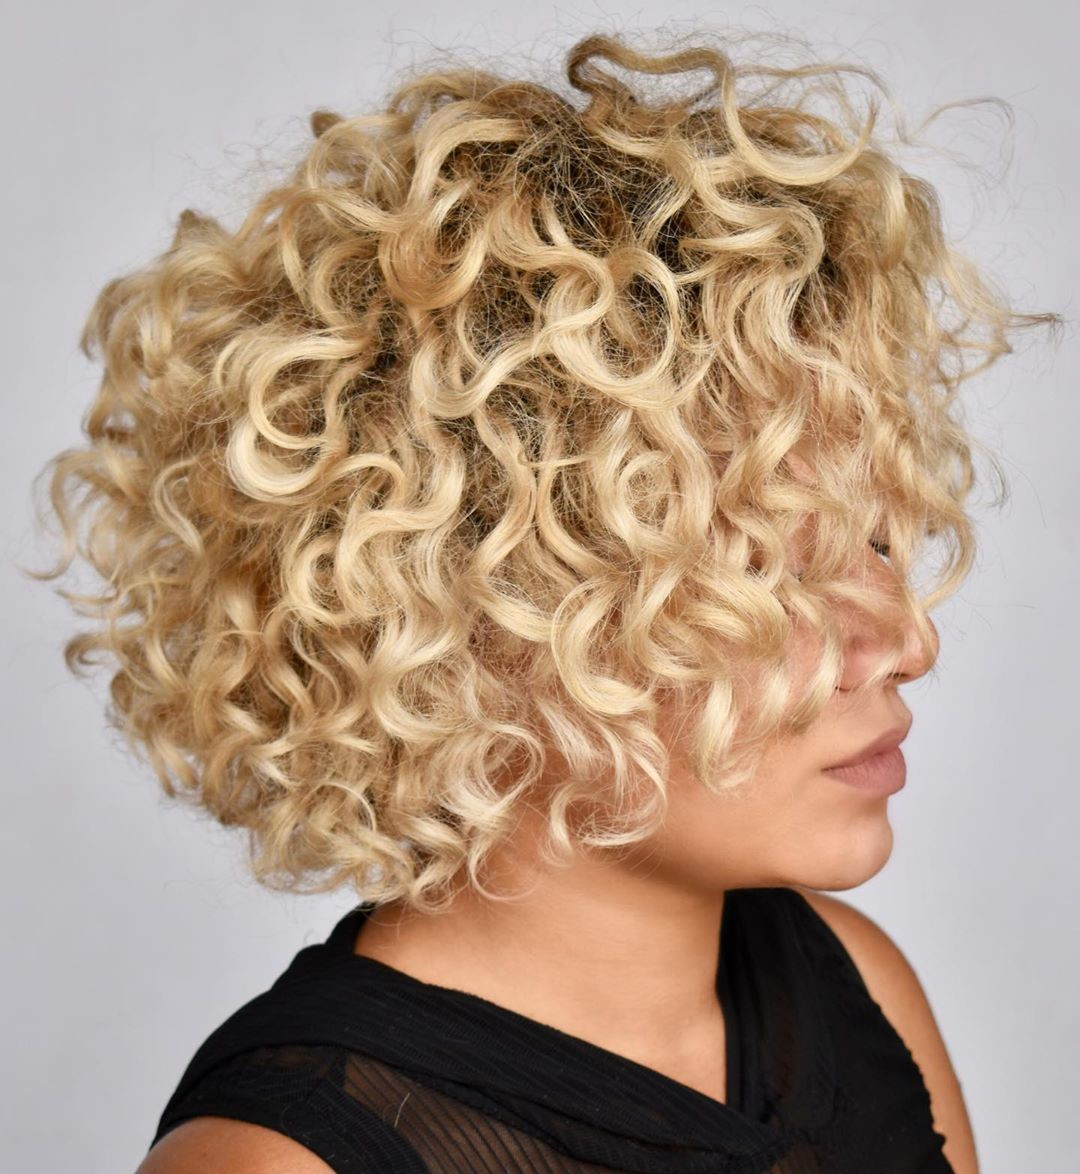 Curly Blonde Hair for Tanned Skin